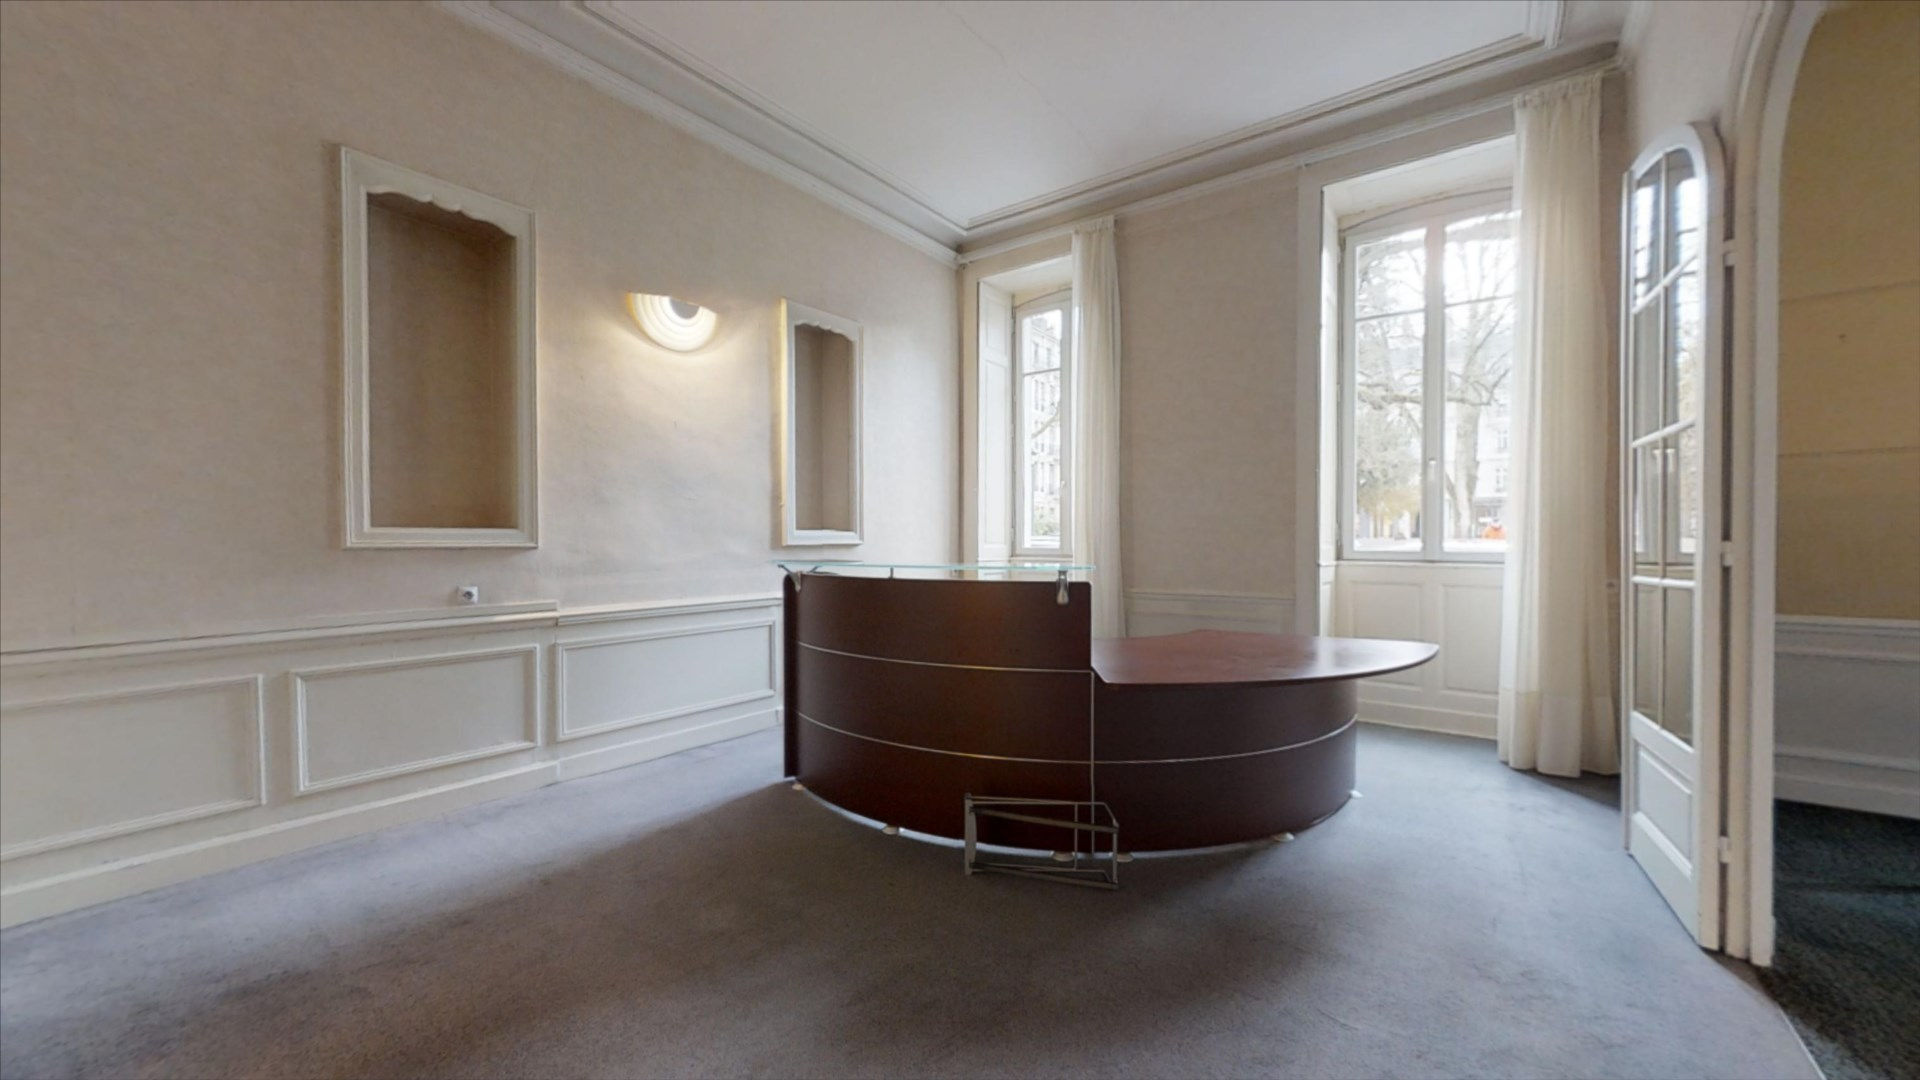 local_professionnel 142.23m² BESANCON - photo 1